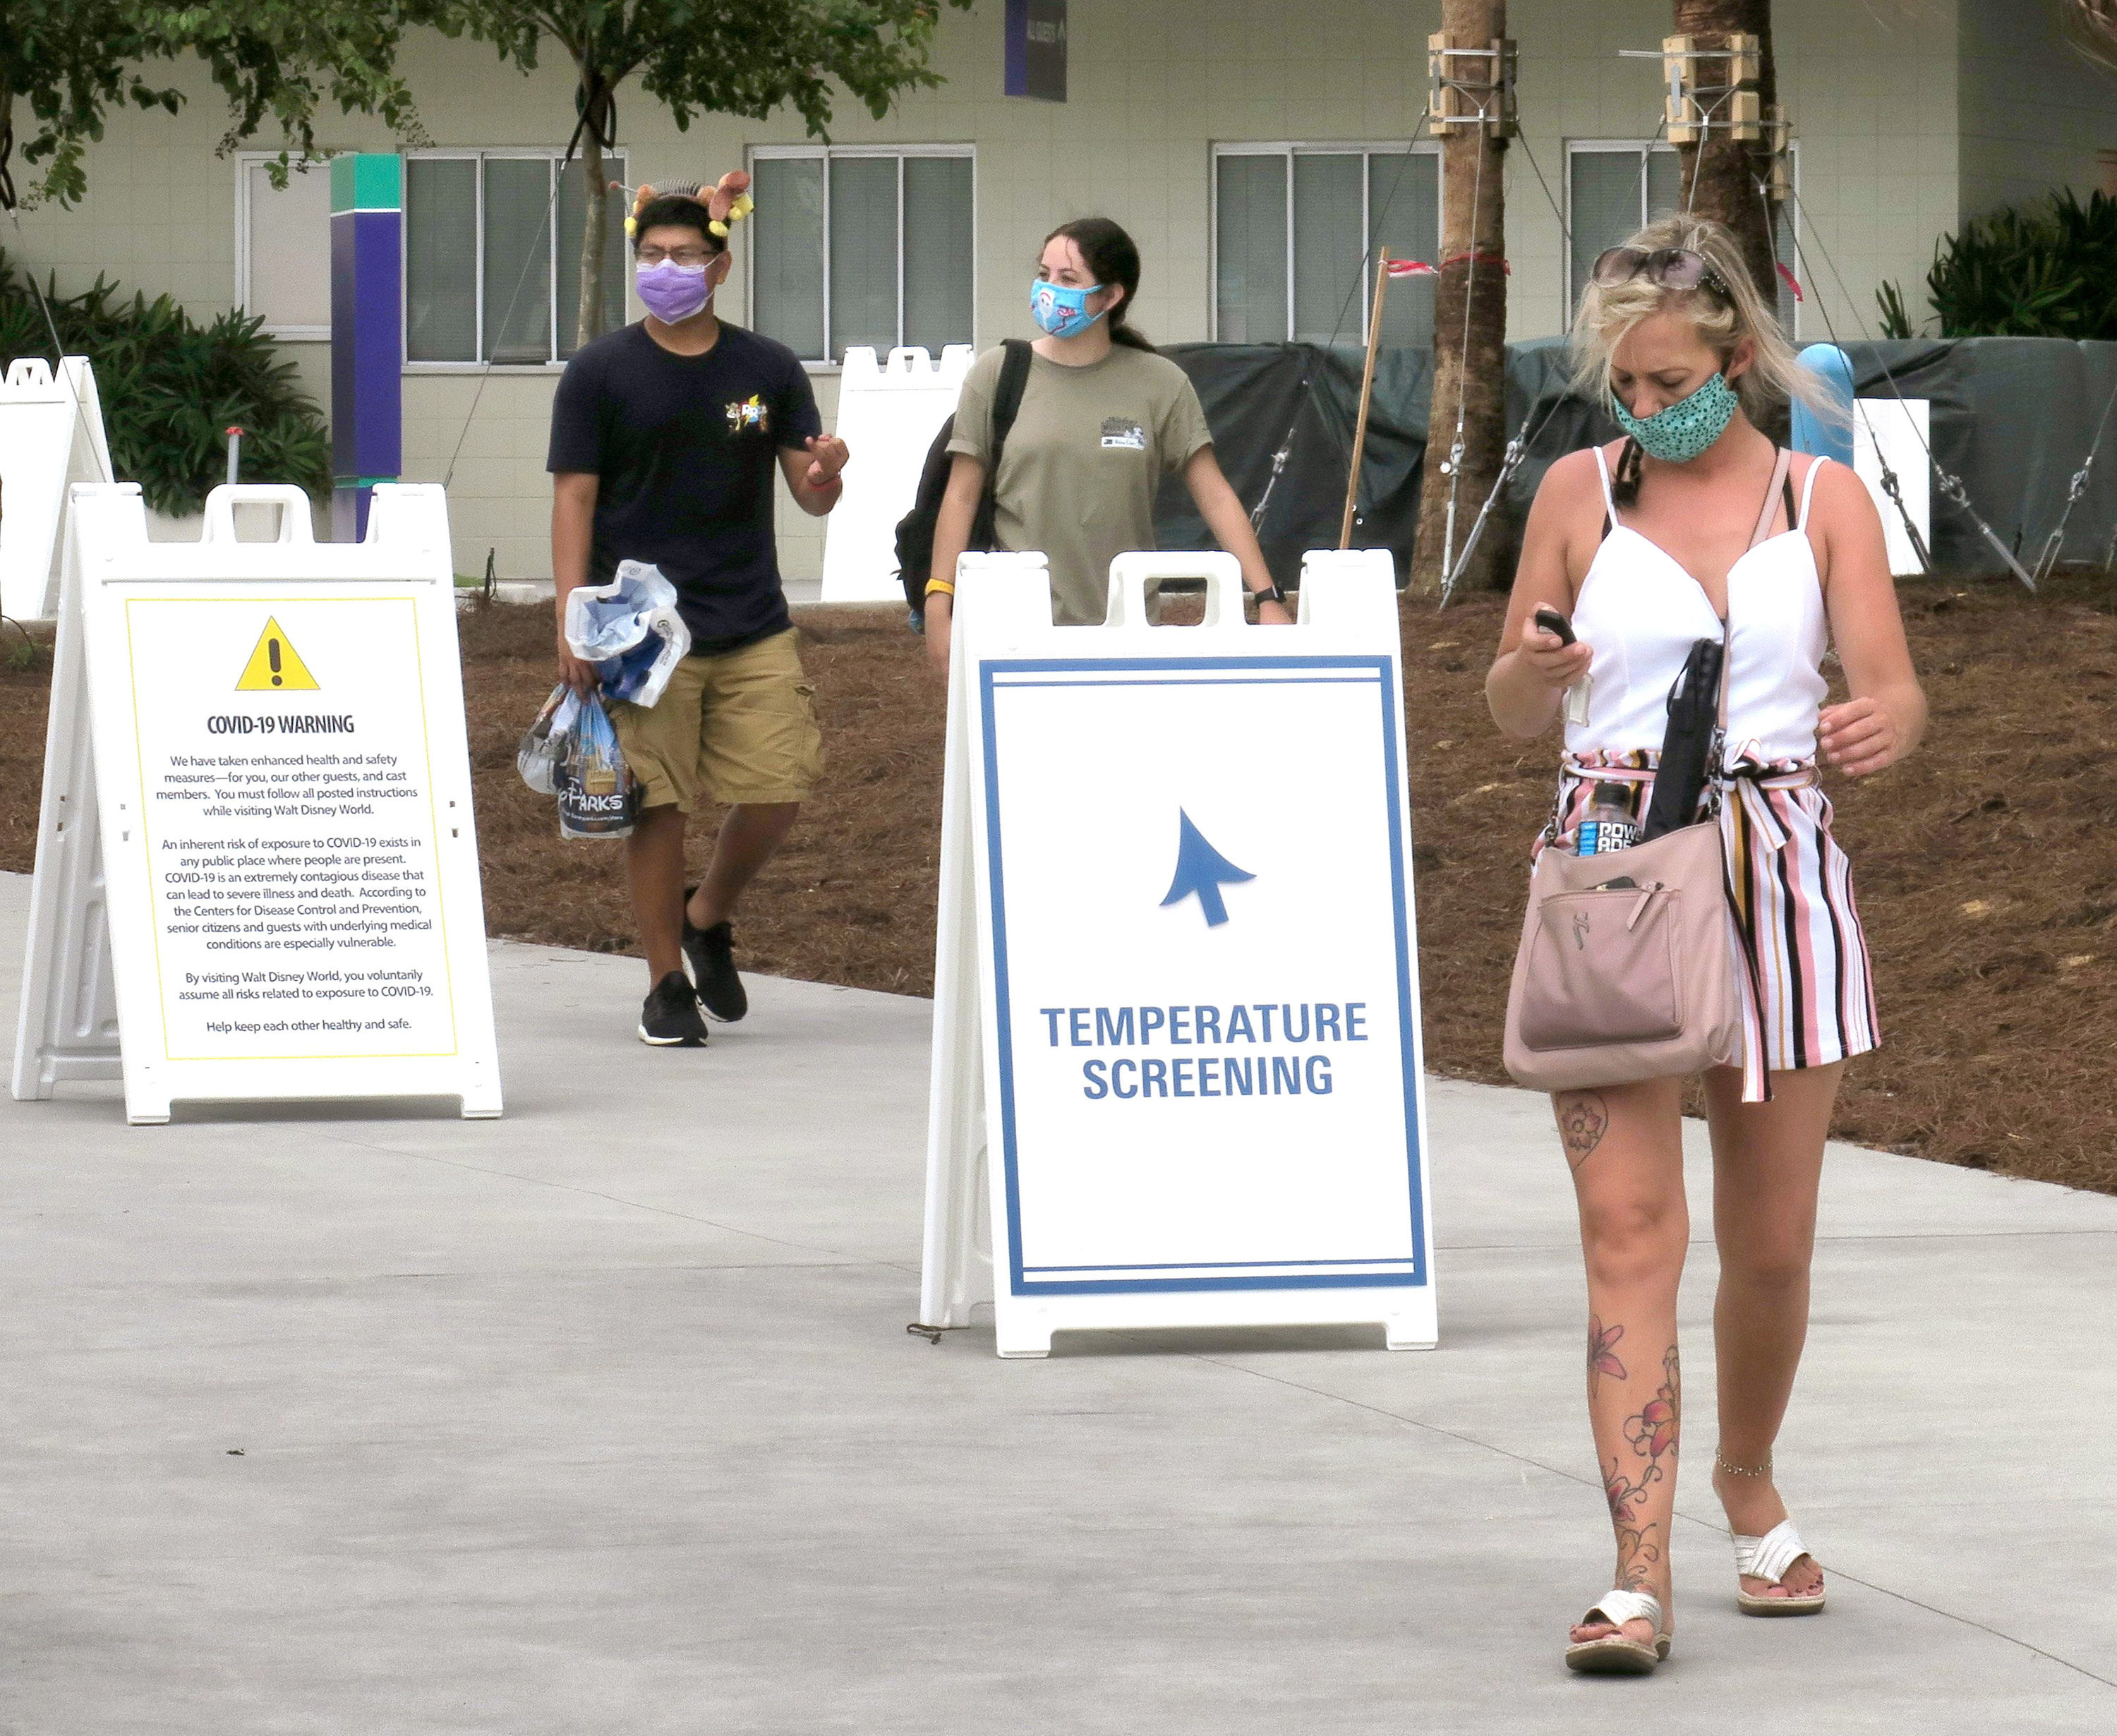 Guests pass signs that point to temperature screening stations and issue COVID-19 warnings